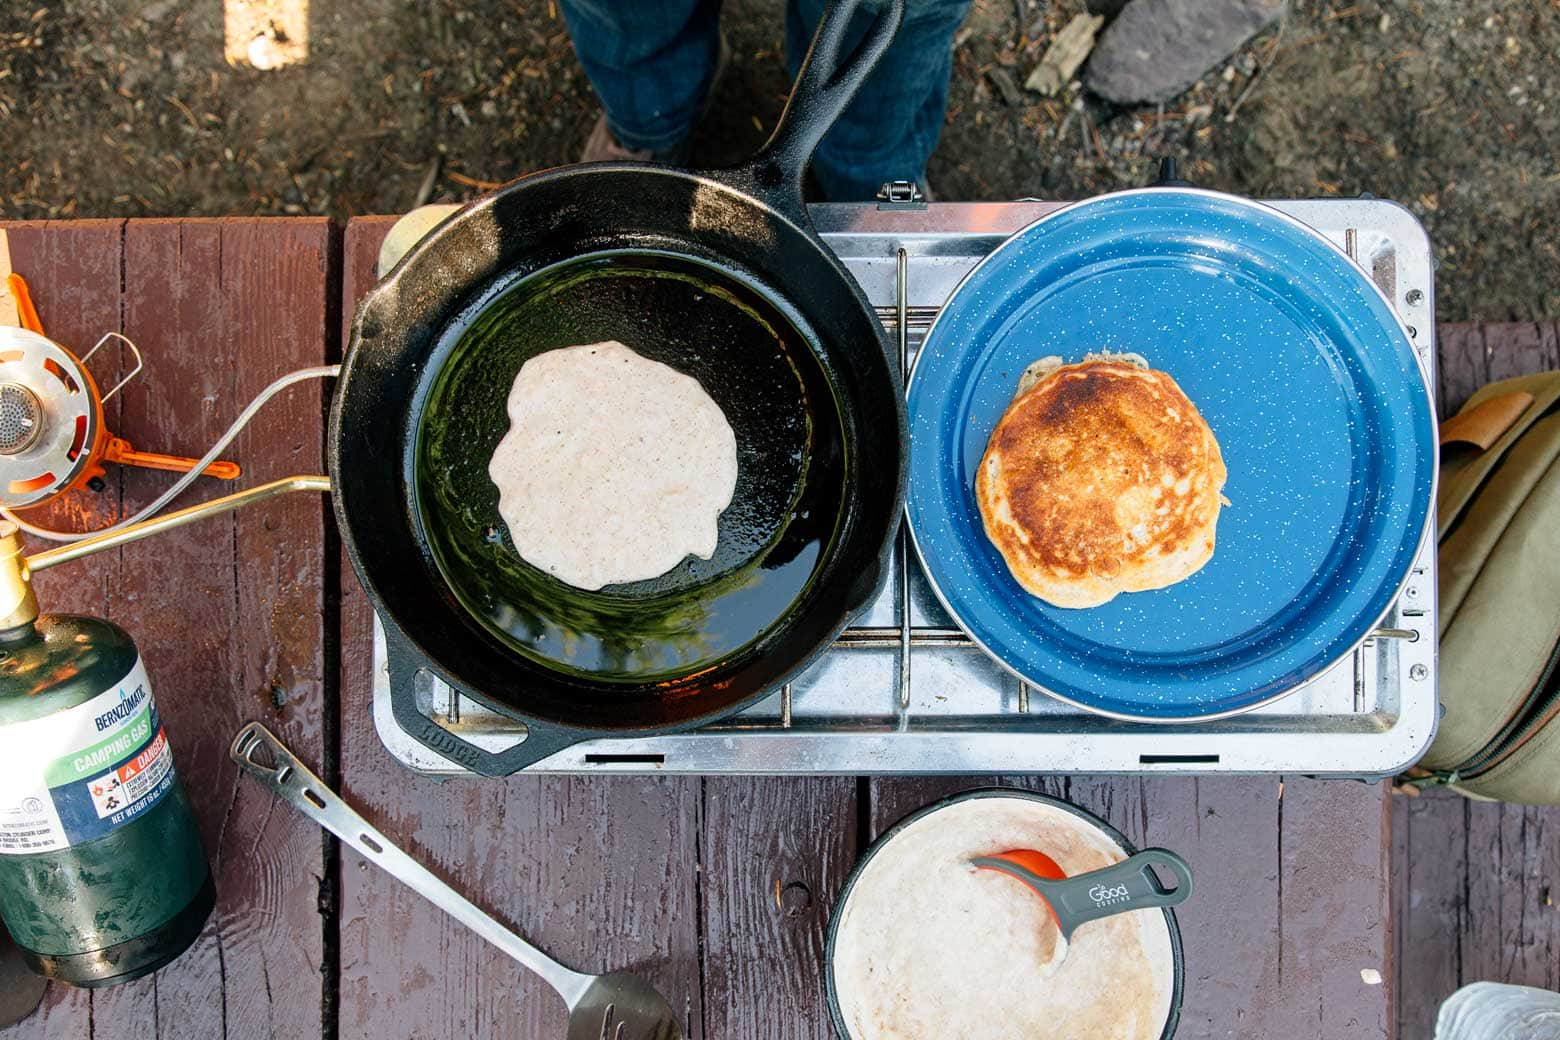 Spiced Pumpkin Pancakes cooking on a camping stove